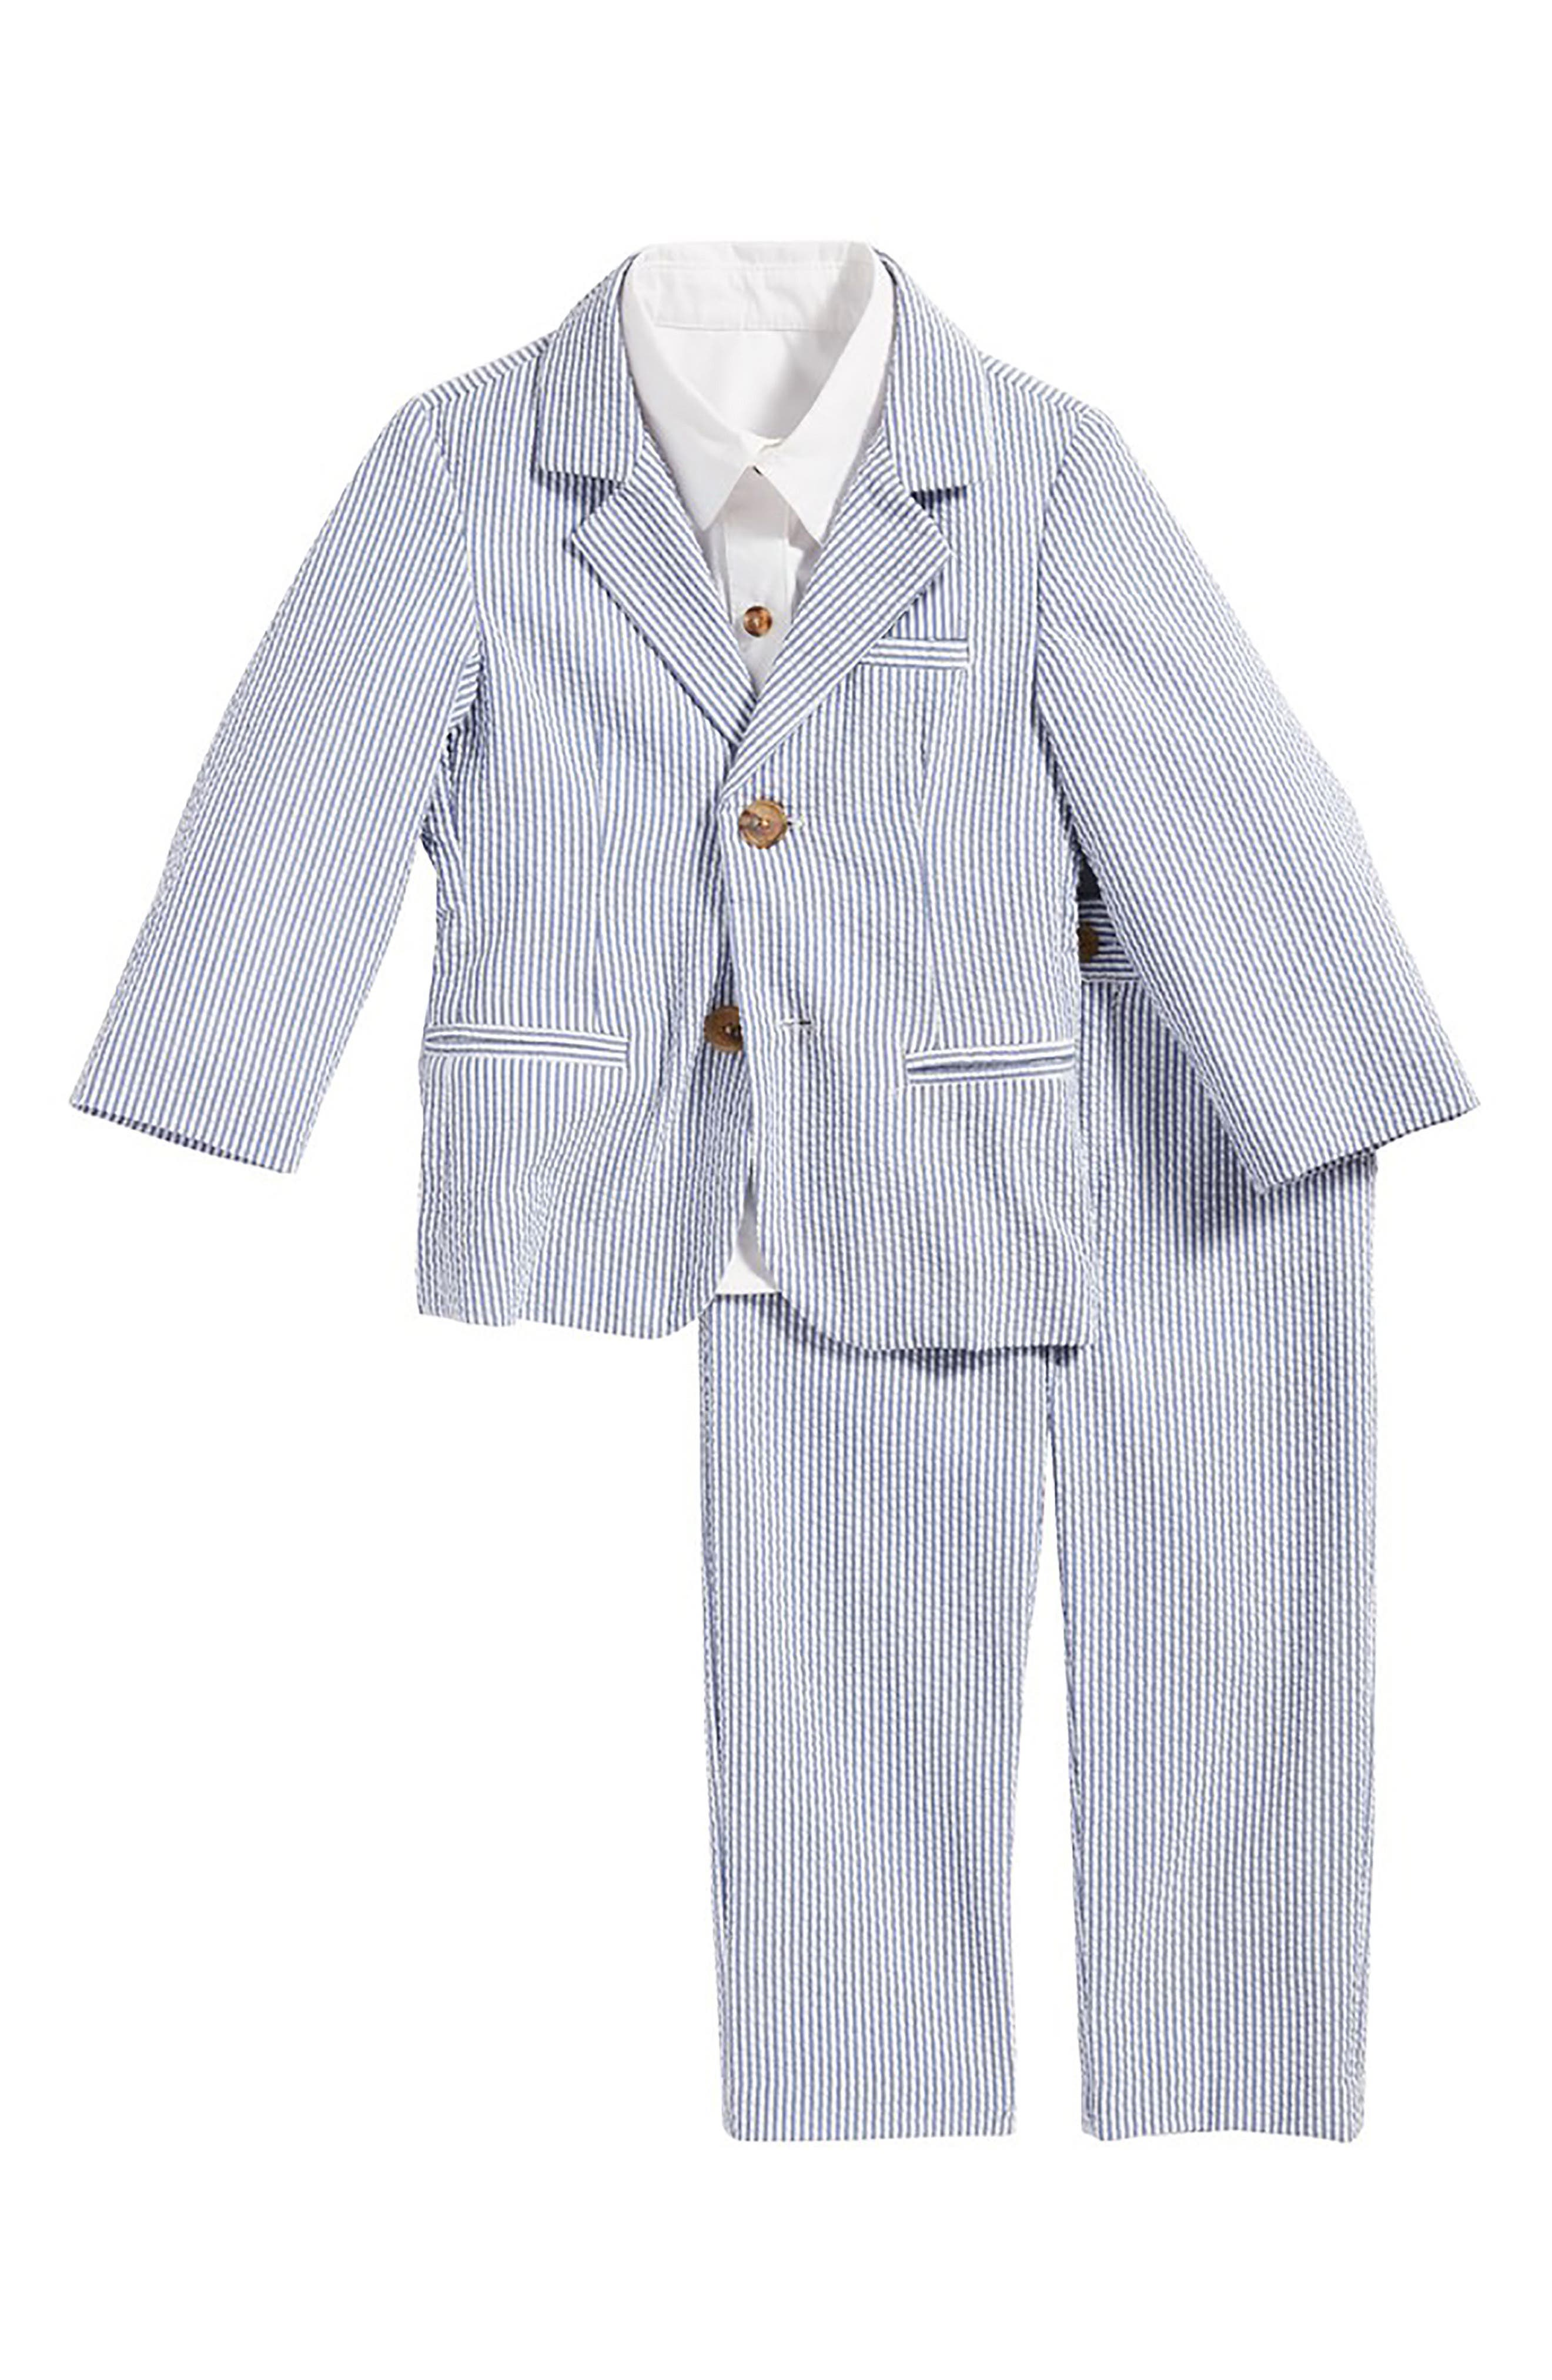 Main Image - Little Brother by Pippa & Julie Seersucker Suit Set (Baby Boys)